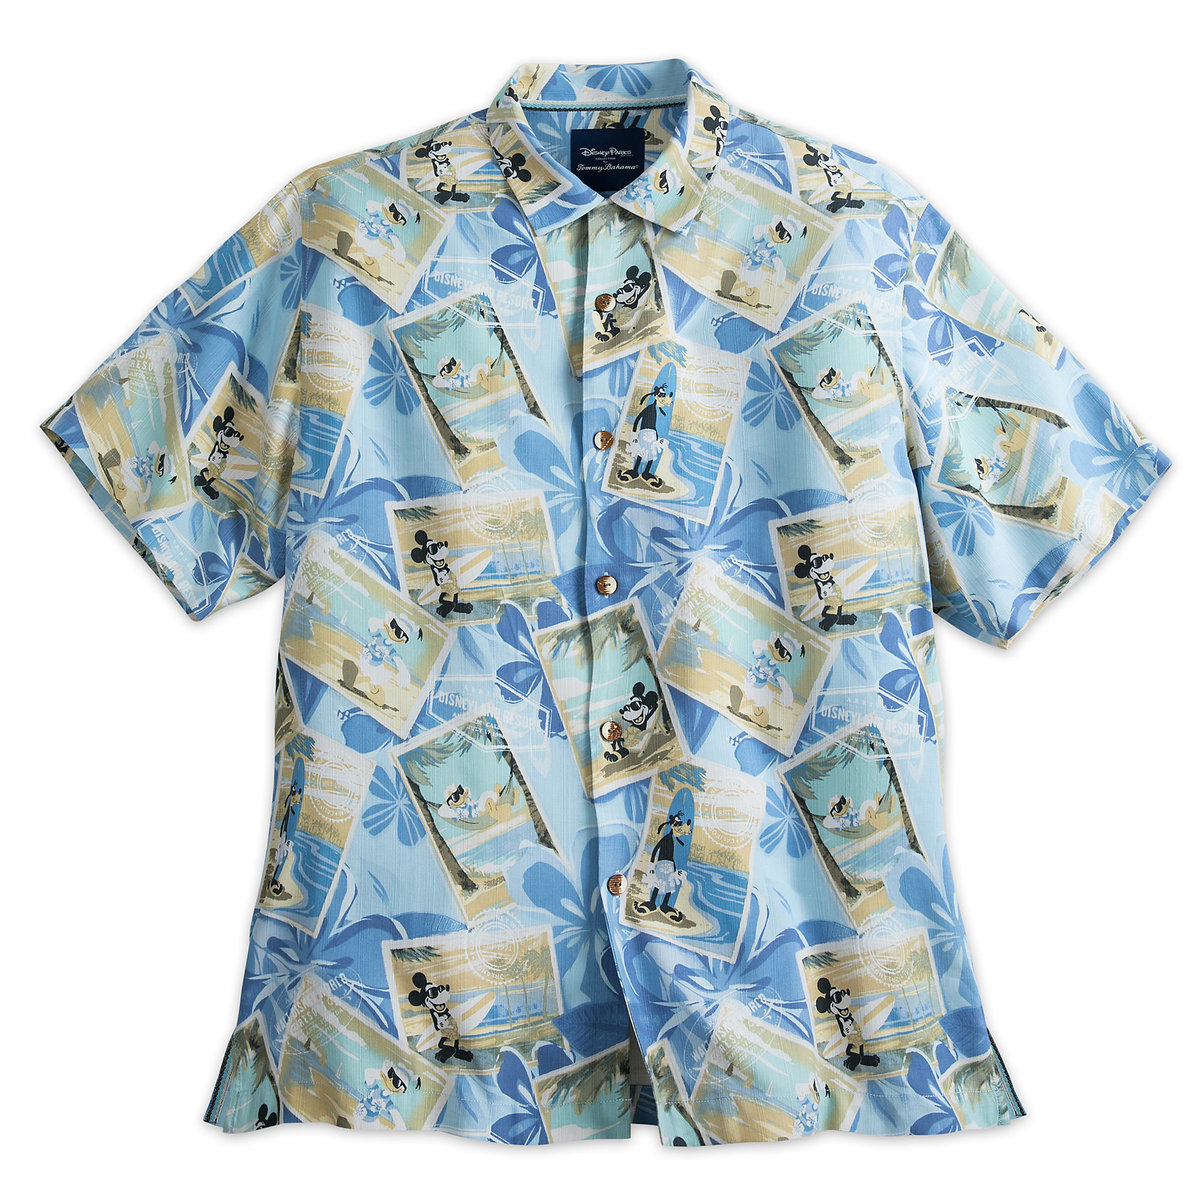 Product Image of Mickey Mouse and Friends Silk Shirt for Men by Tommy Bahama - Blue # 1